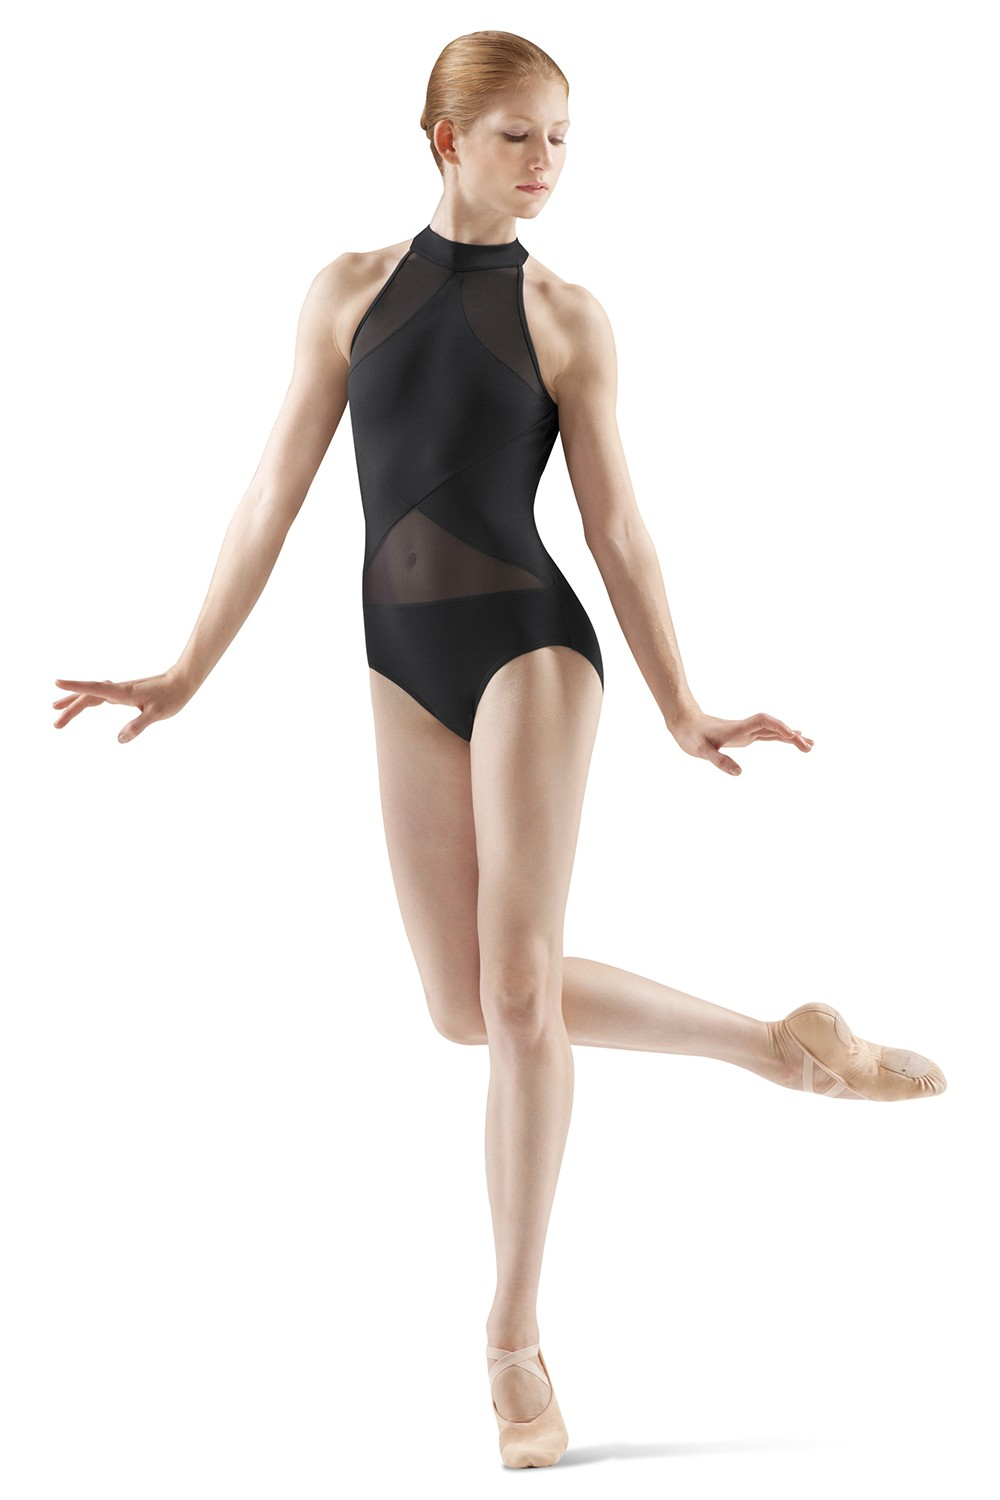 Justaucorps Avec Panneaux Transparents Women's Dance Leotards